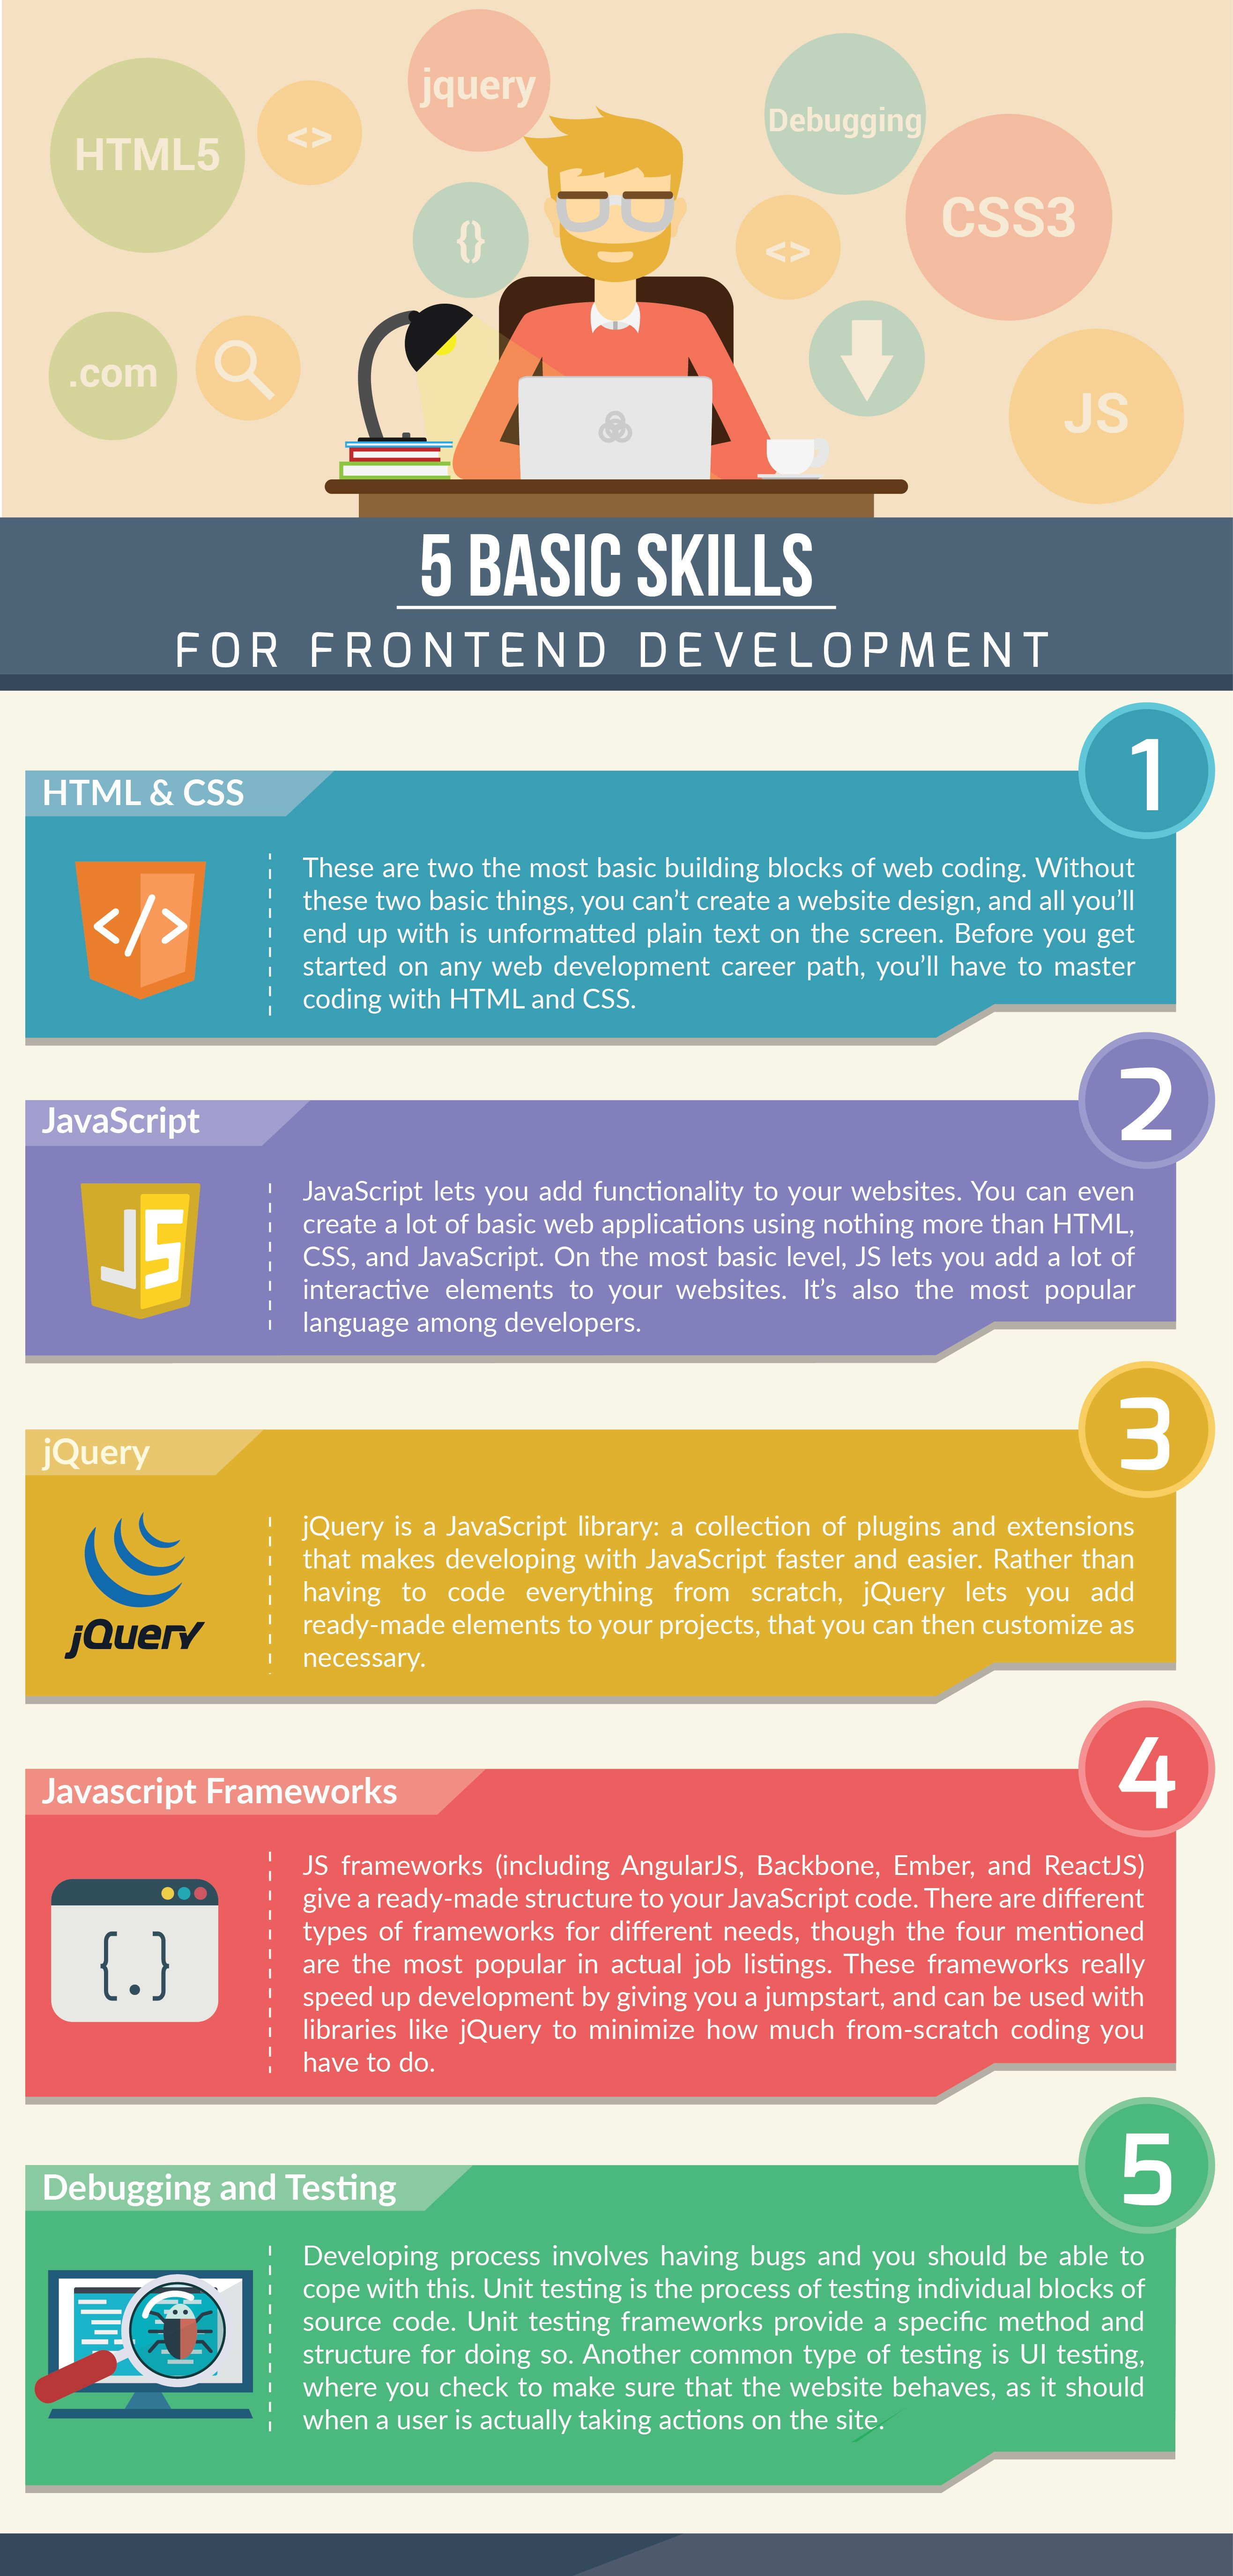 What Do You Need To Know To Become A Frontend Developer Frontenddeveloper Developerskills Webdevel Frontend Developer Web Development Programming Frontend